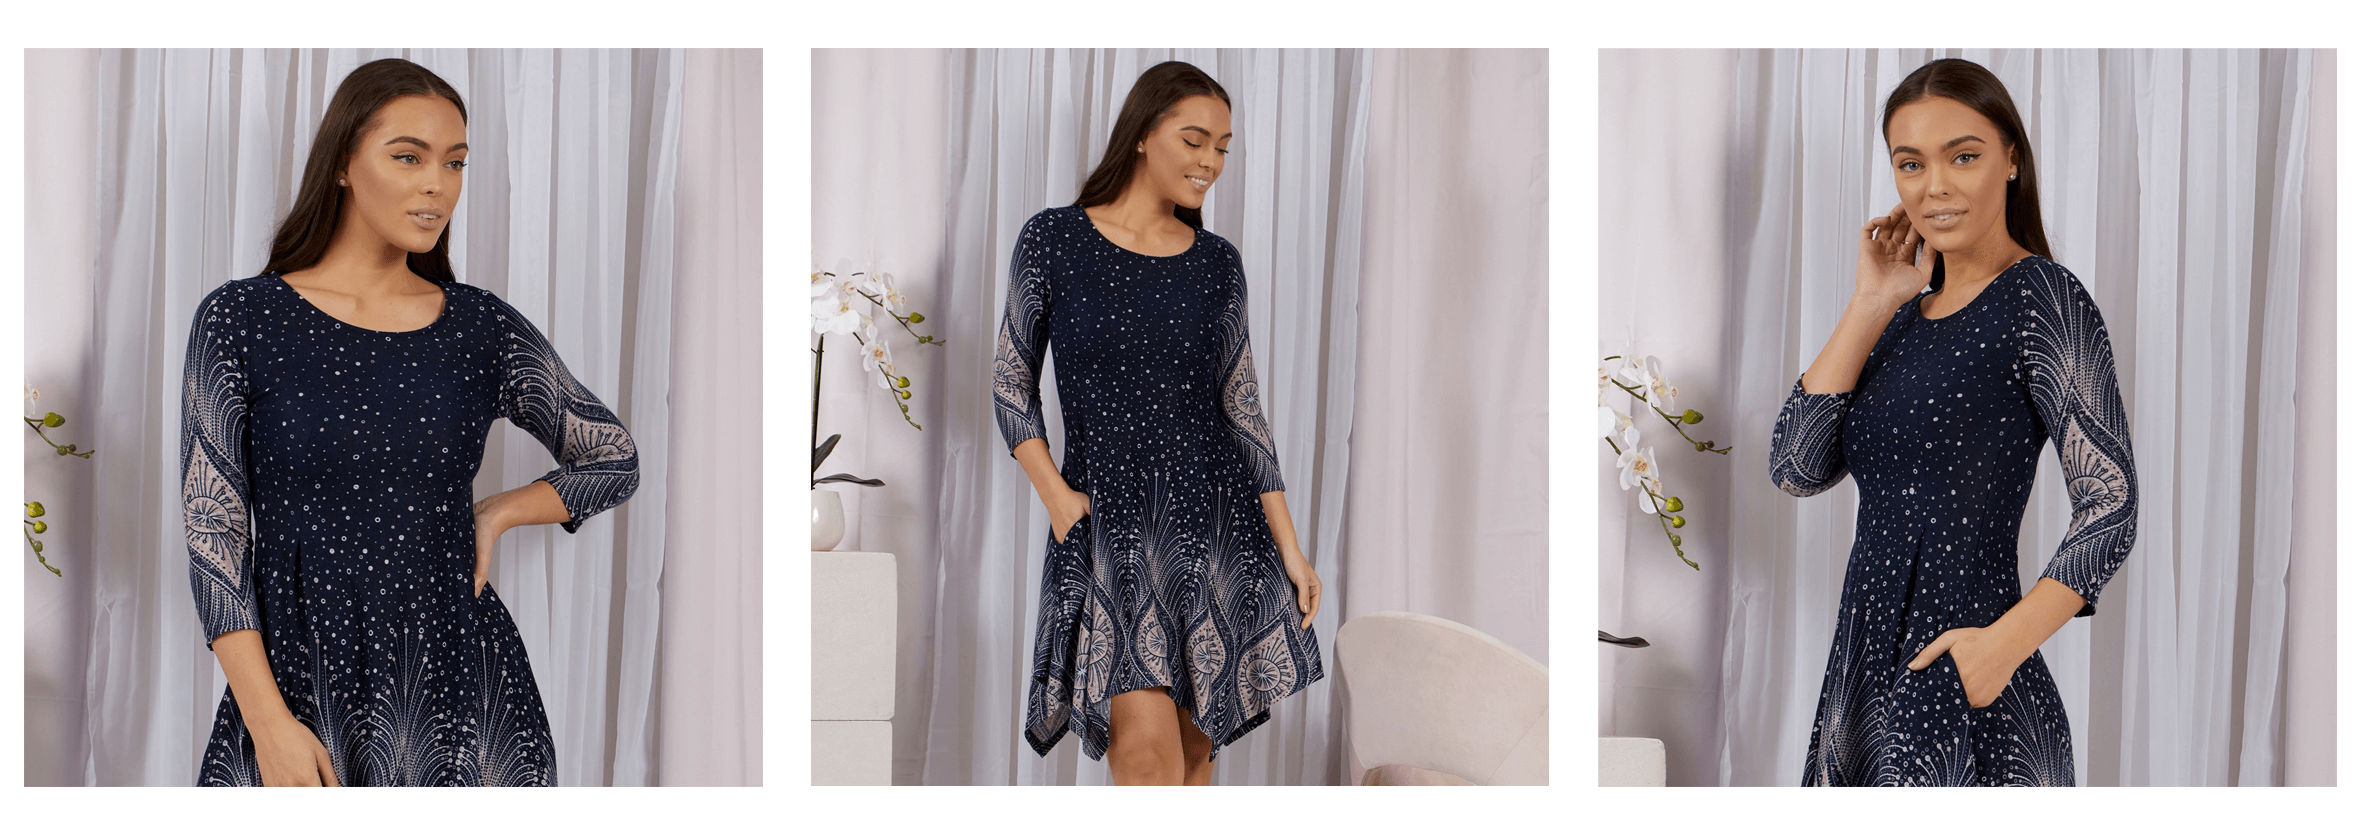 EOFYS Blowout - Printed Hanky Hem Dress - Femme Connection